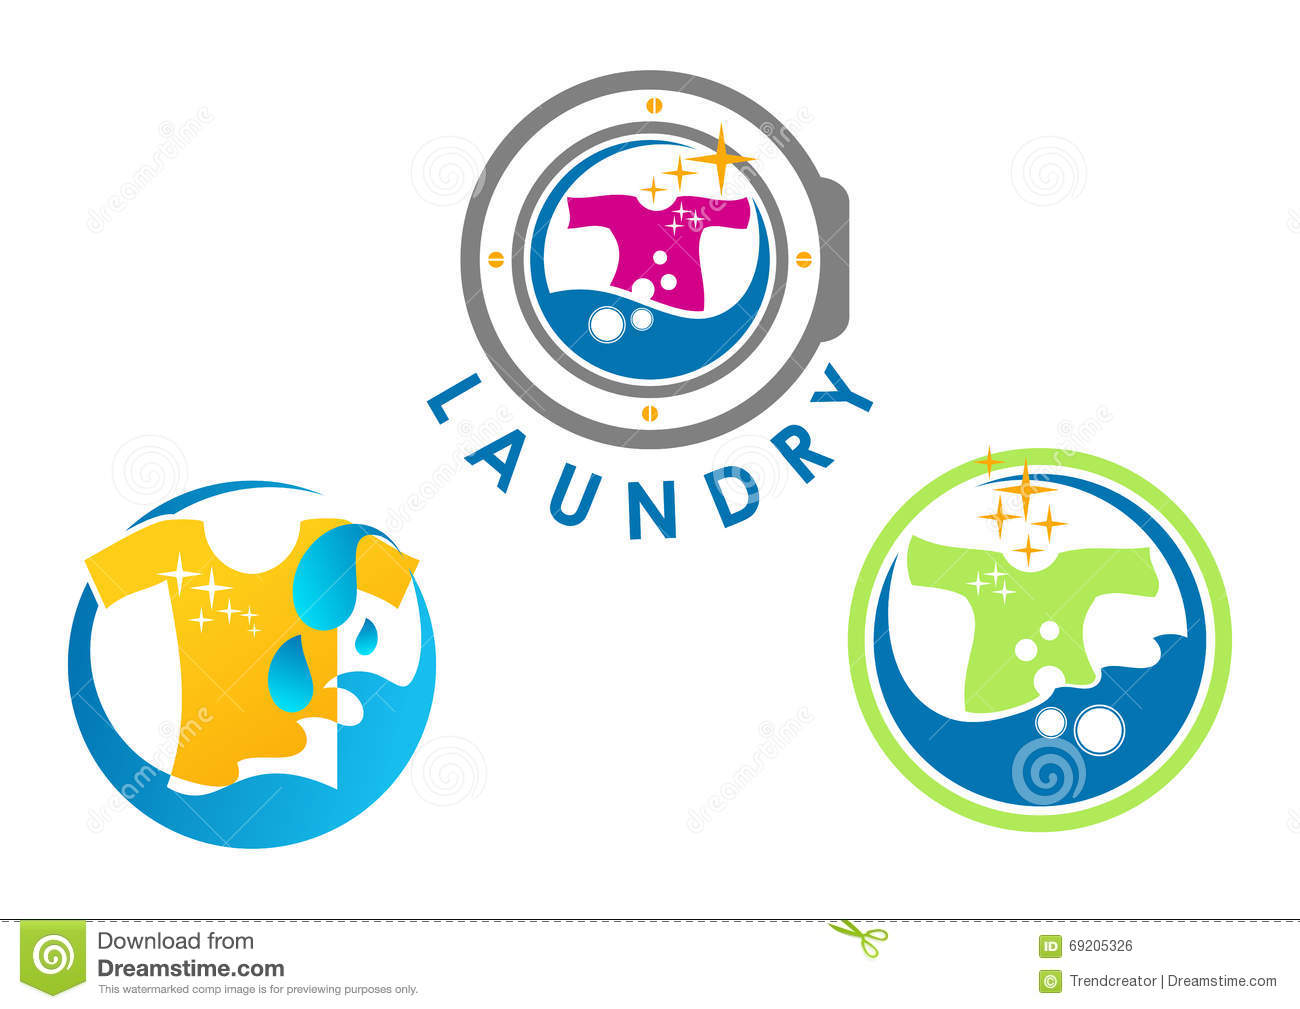 How Do I Start A Laundry Business?